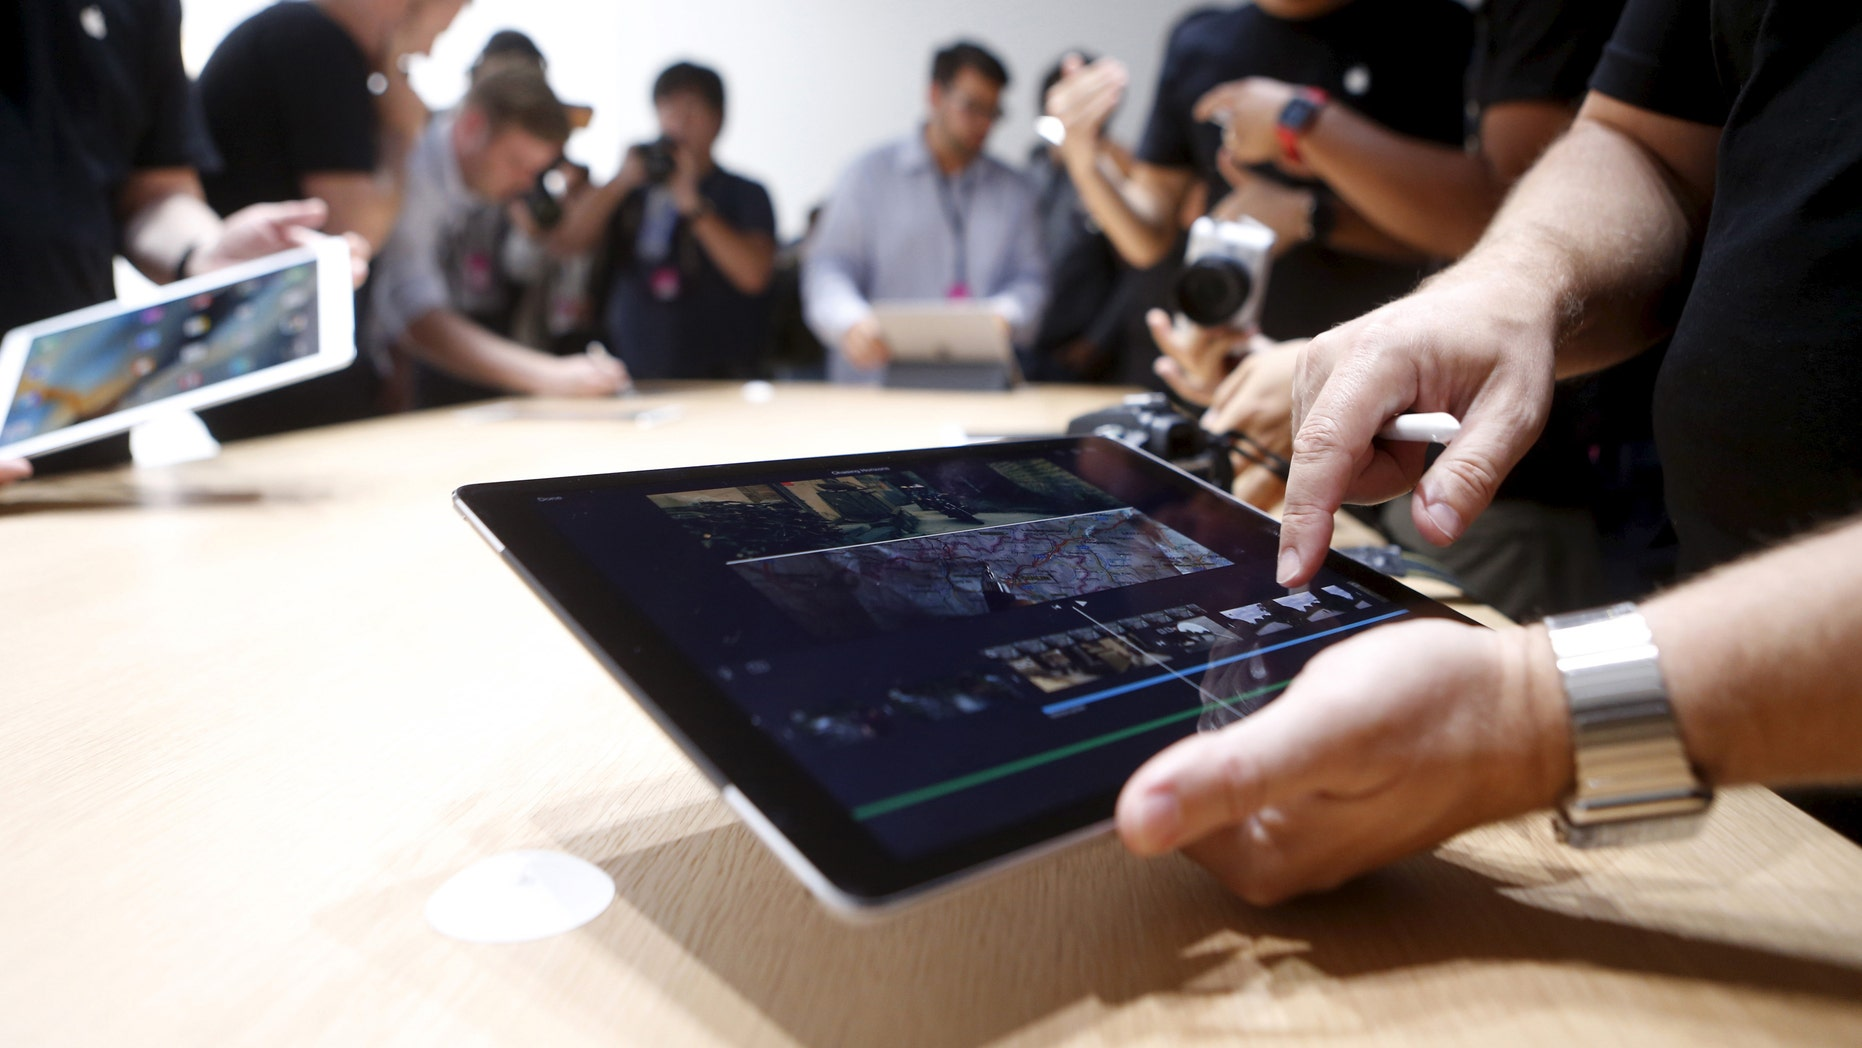 The new Apple iPad Pro is displayed during an Apple media event in San Francisco, Calif., Sept. 9, 2015.